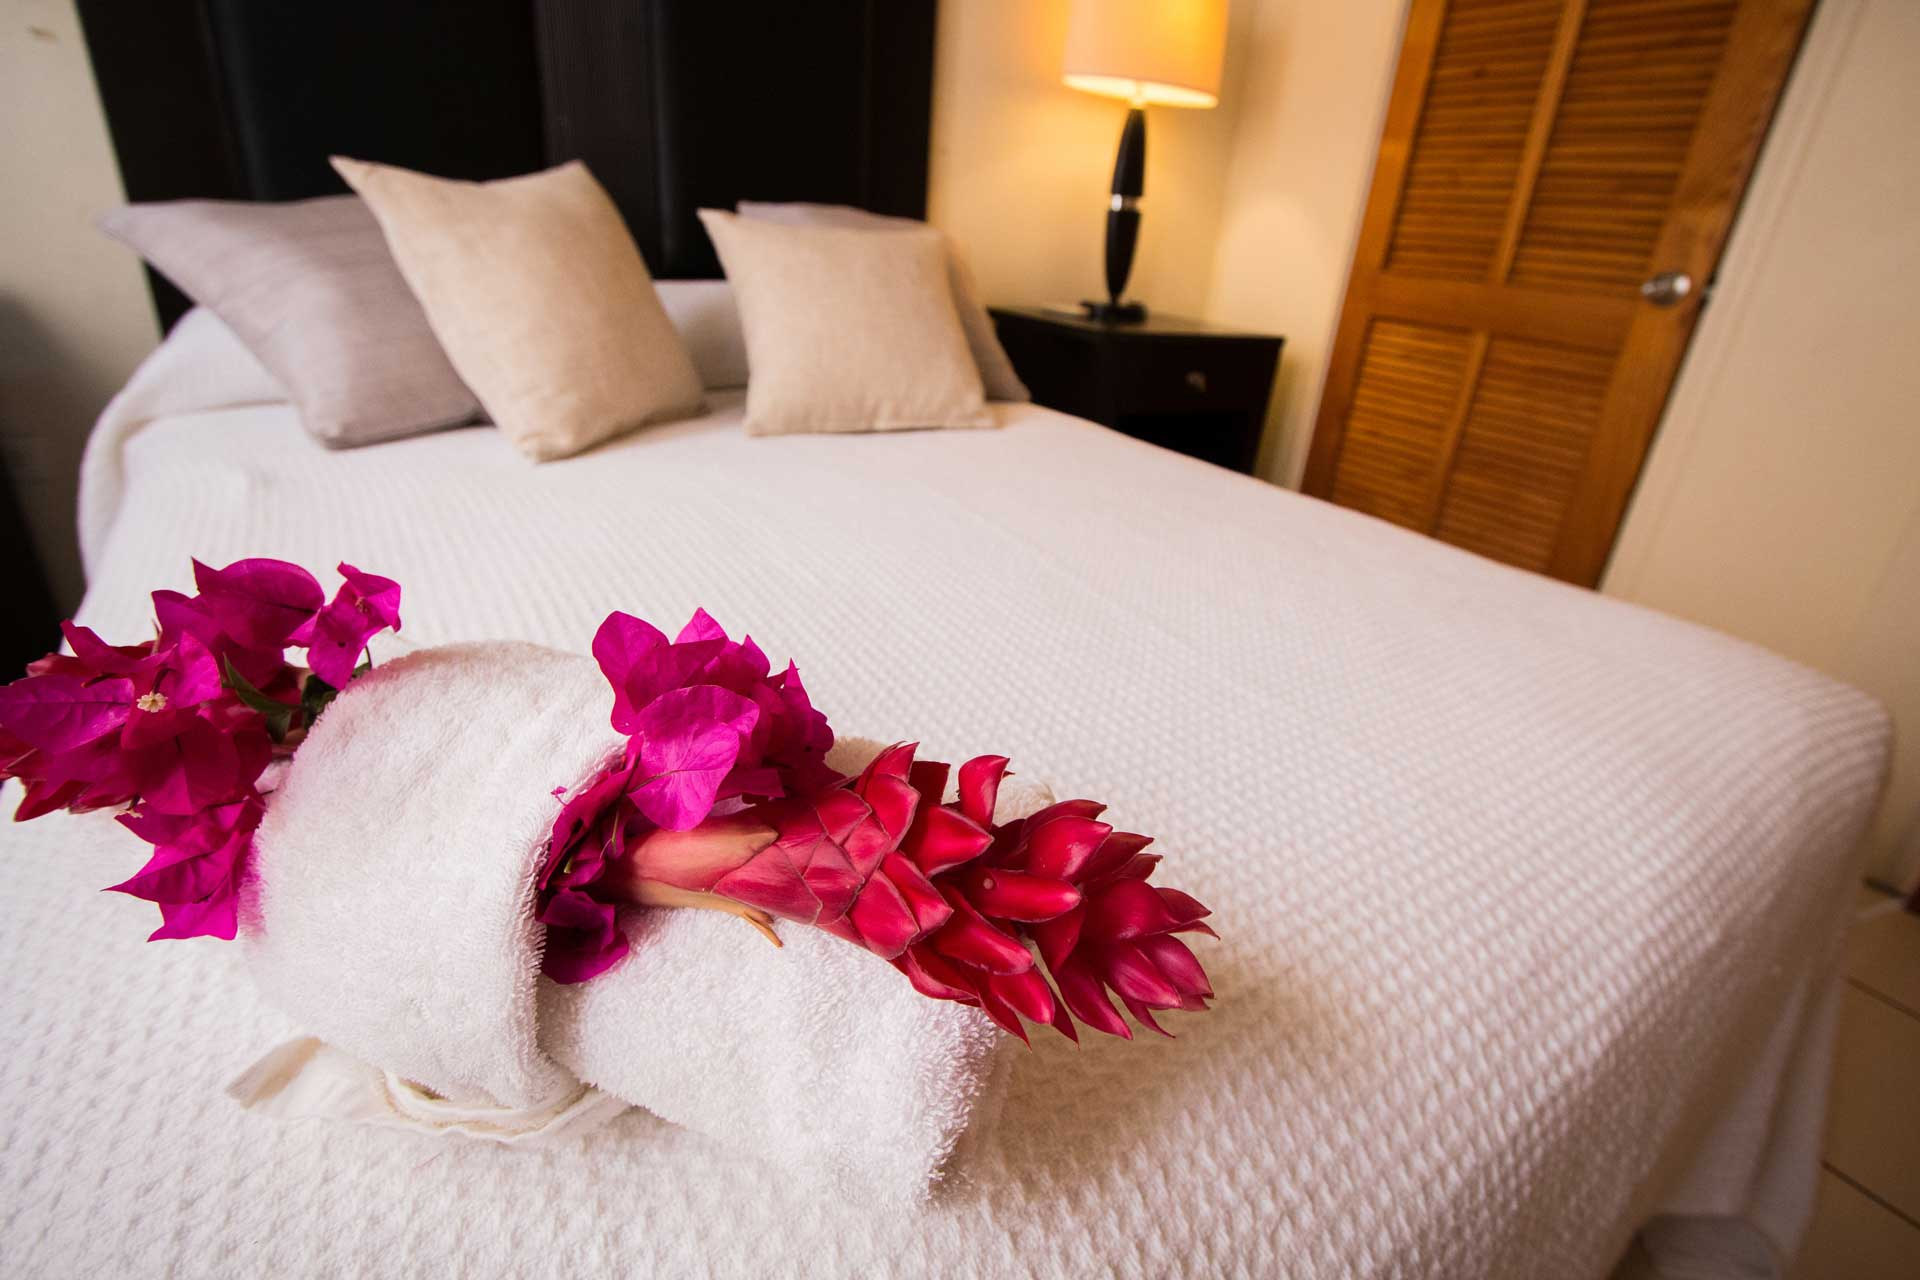 Connies Comfort Suites bed with flowers and towel